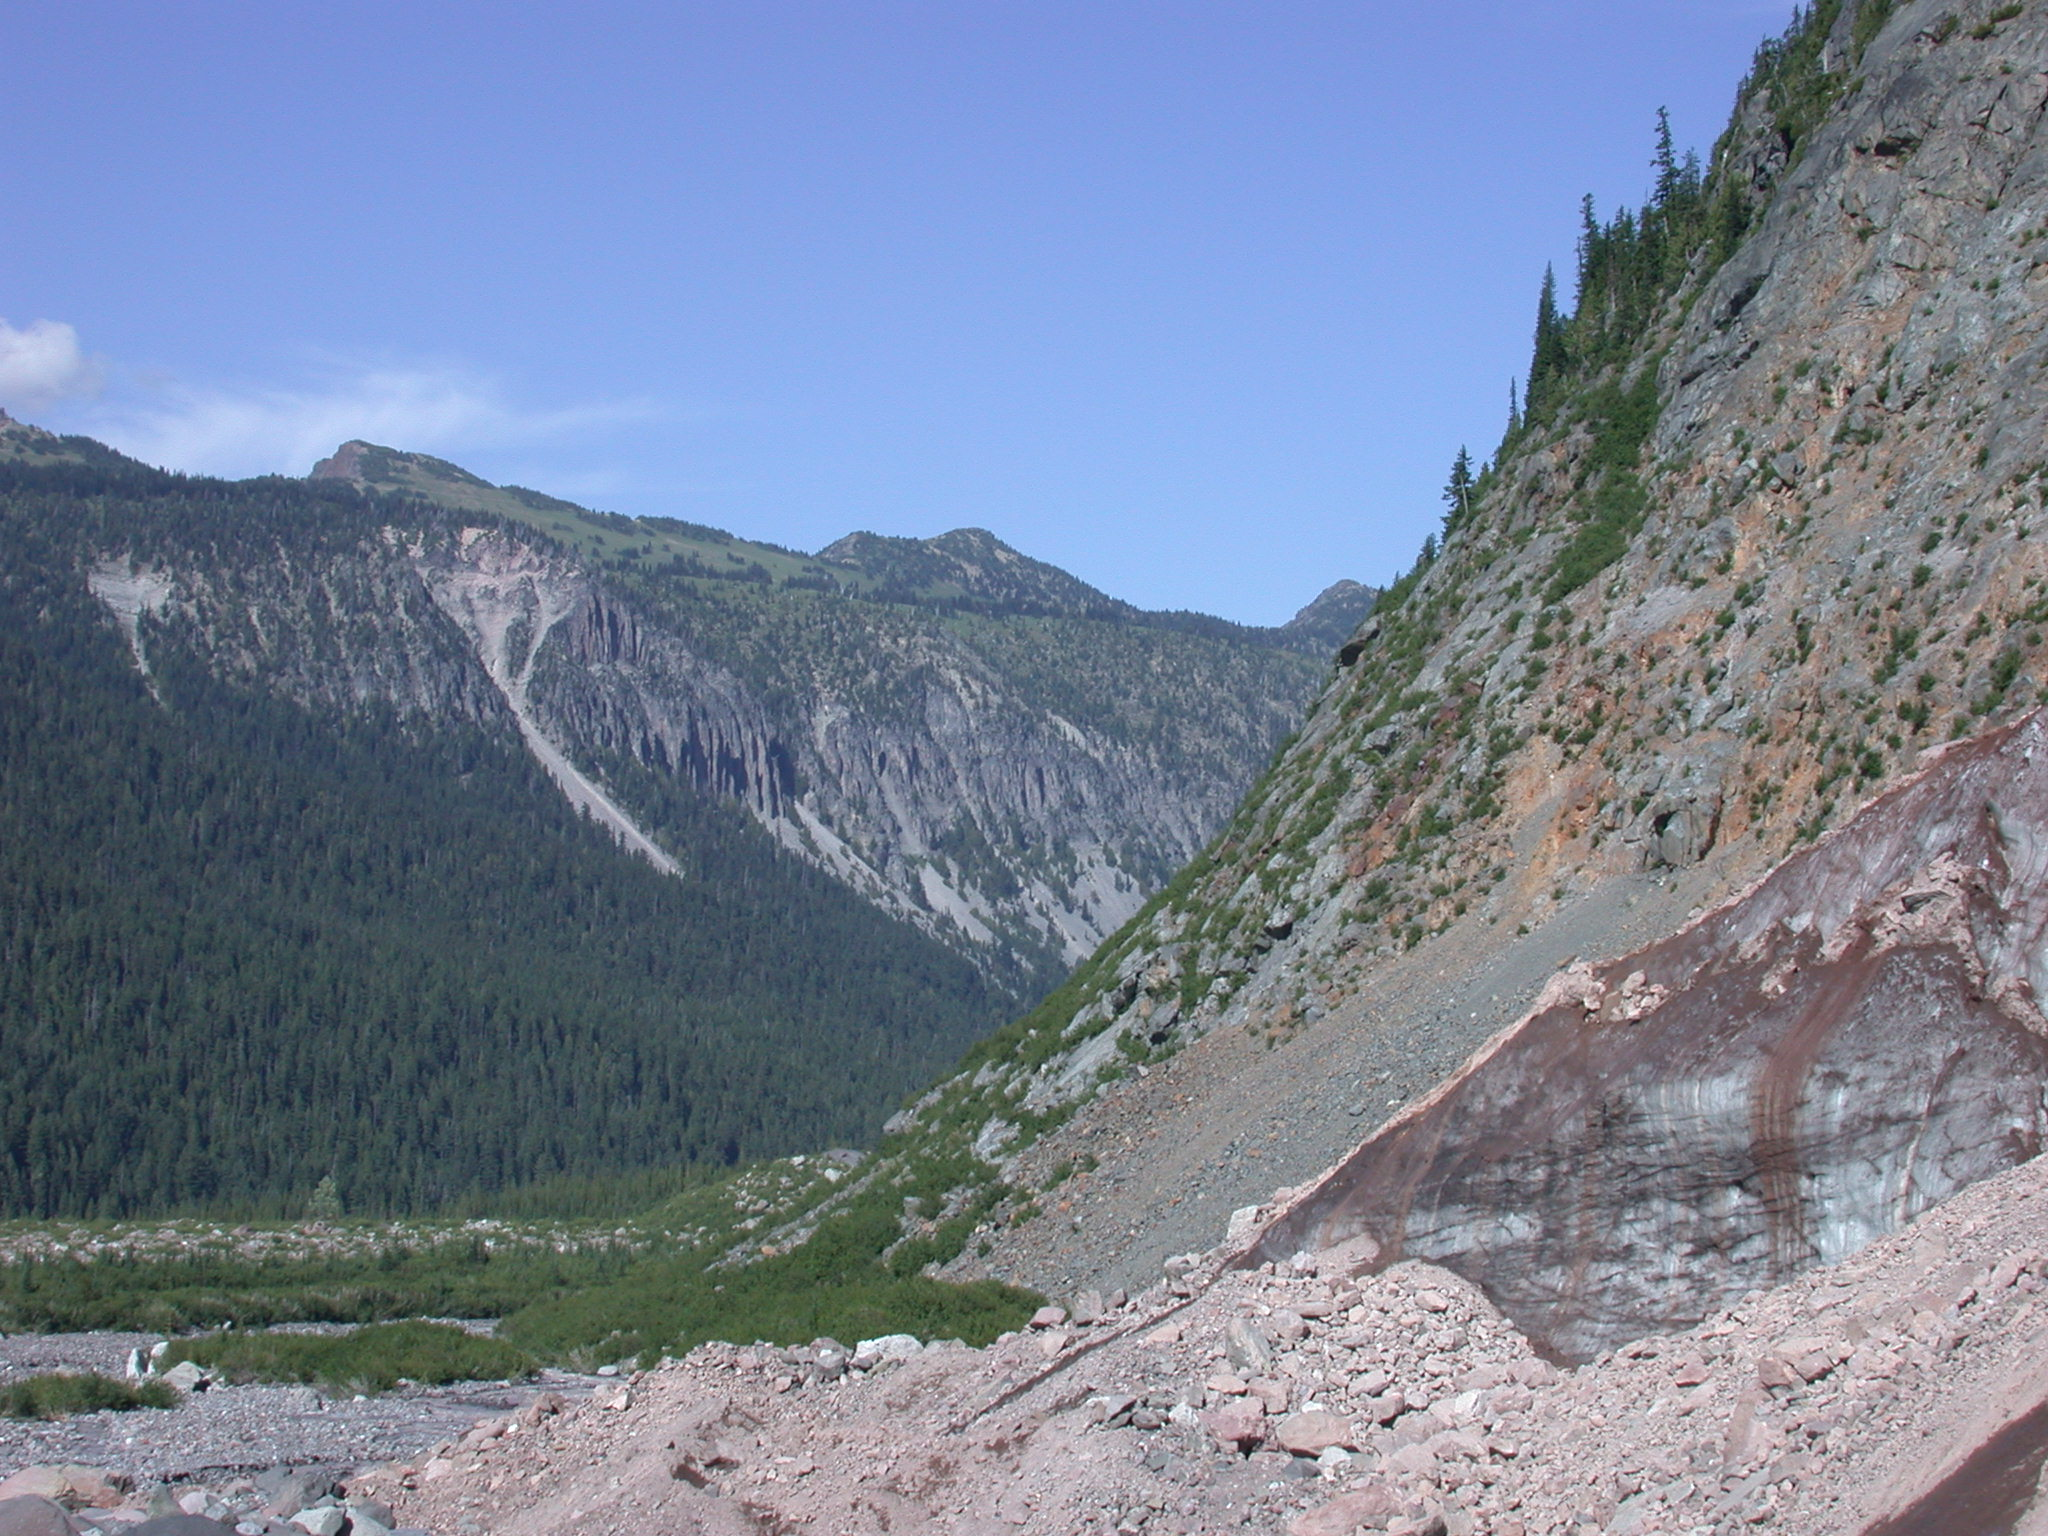 Glacial Canyon on Mount Rainier